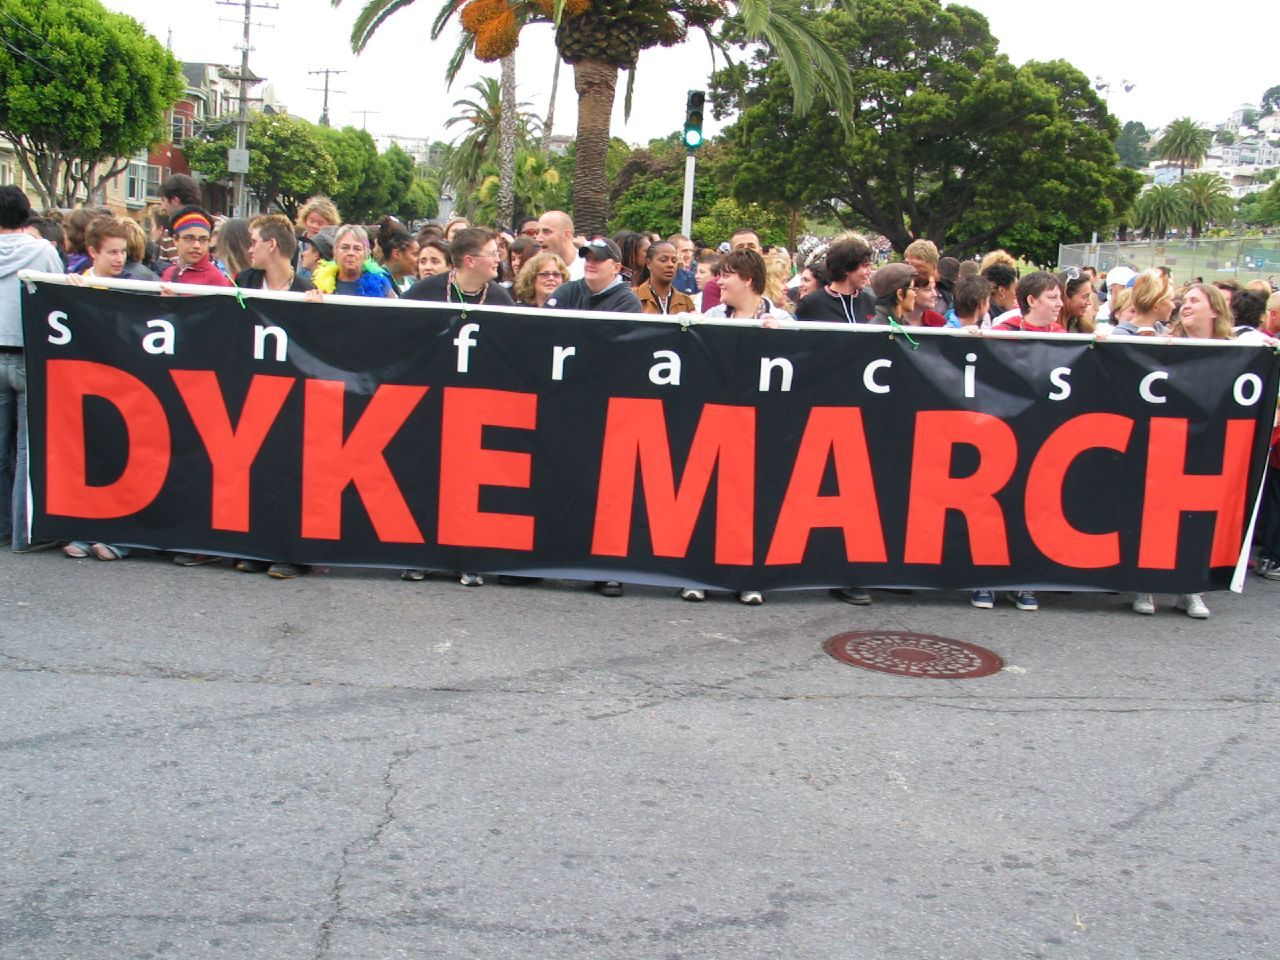 LGBT Pride: Where to Eat and Drink During the Dyke March. San Francisco Dyke March. Photo: Wendy Goodfriend Post by Mary Ladd